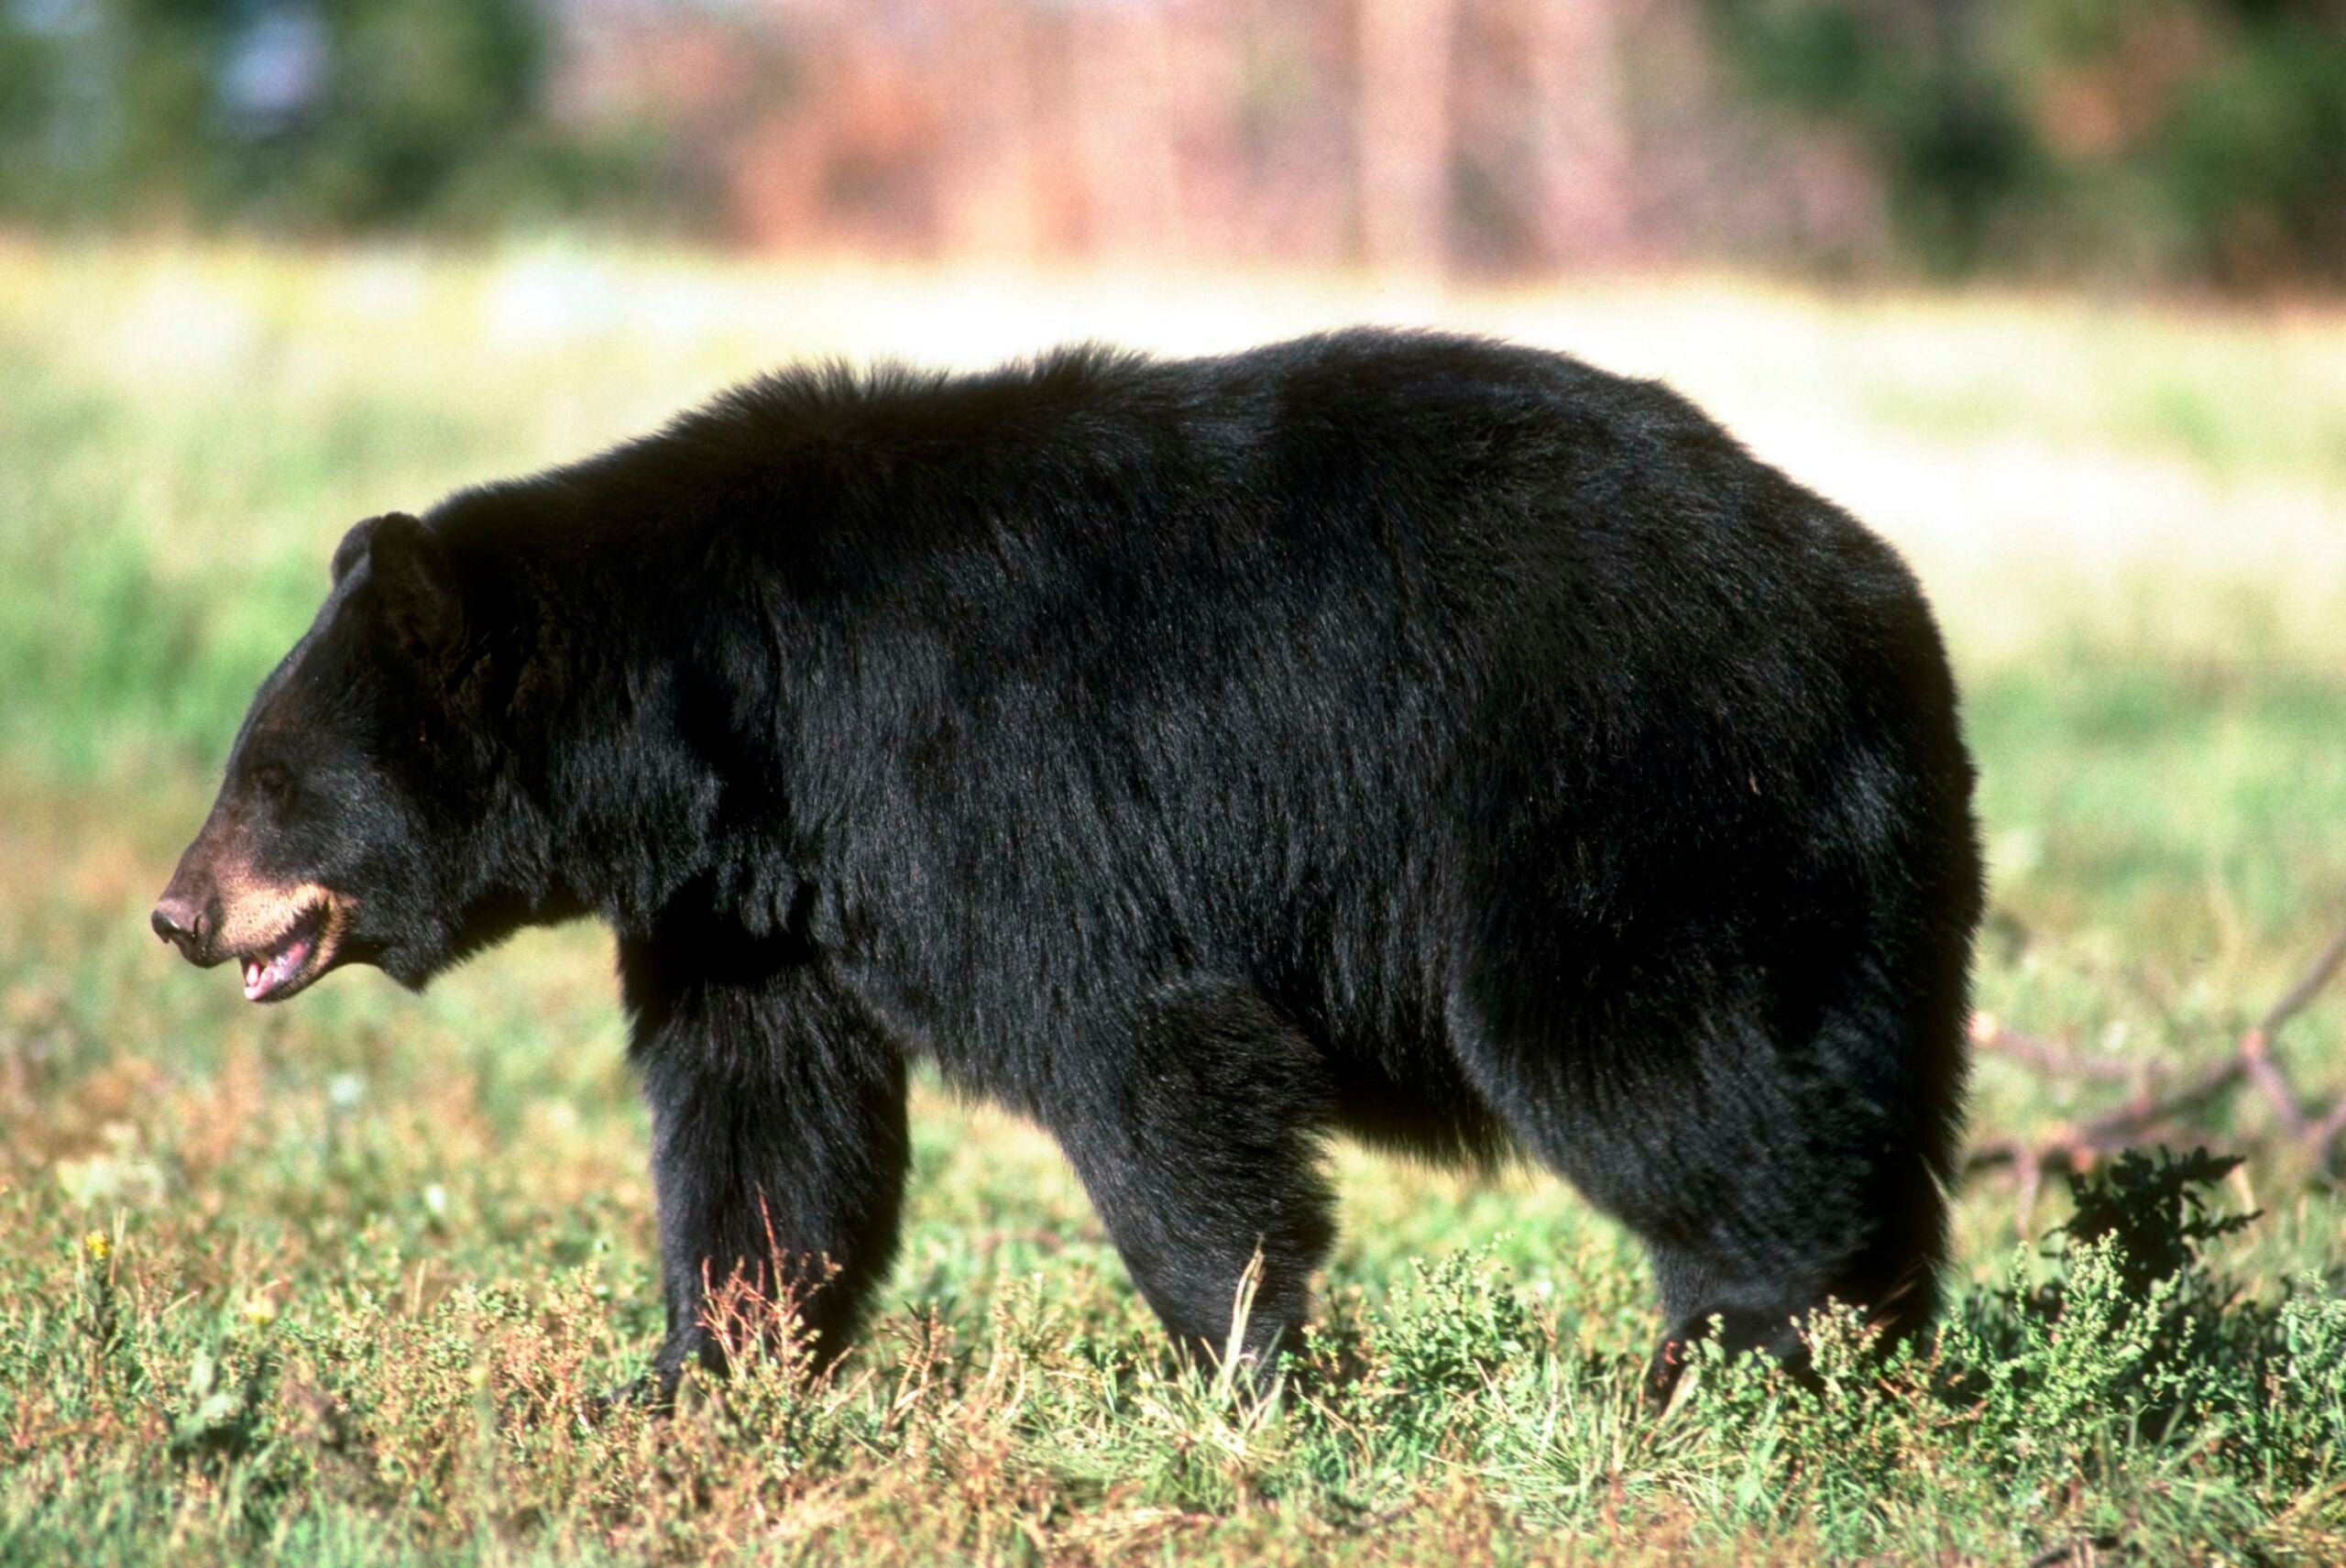 A black bear walks across a meadow in California, where a bear hunting ban has been proposed.